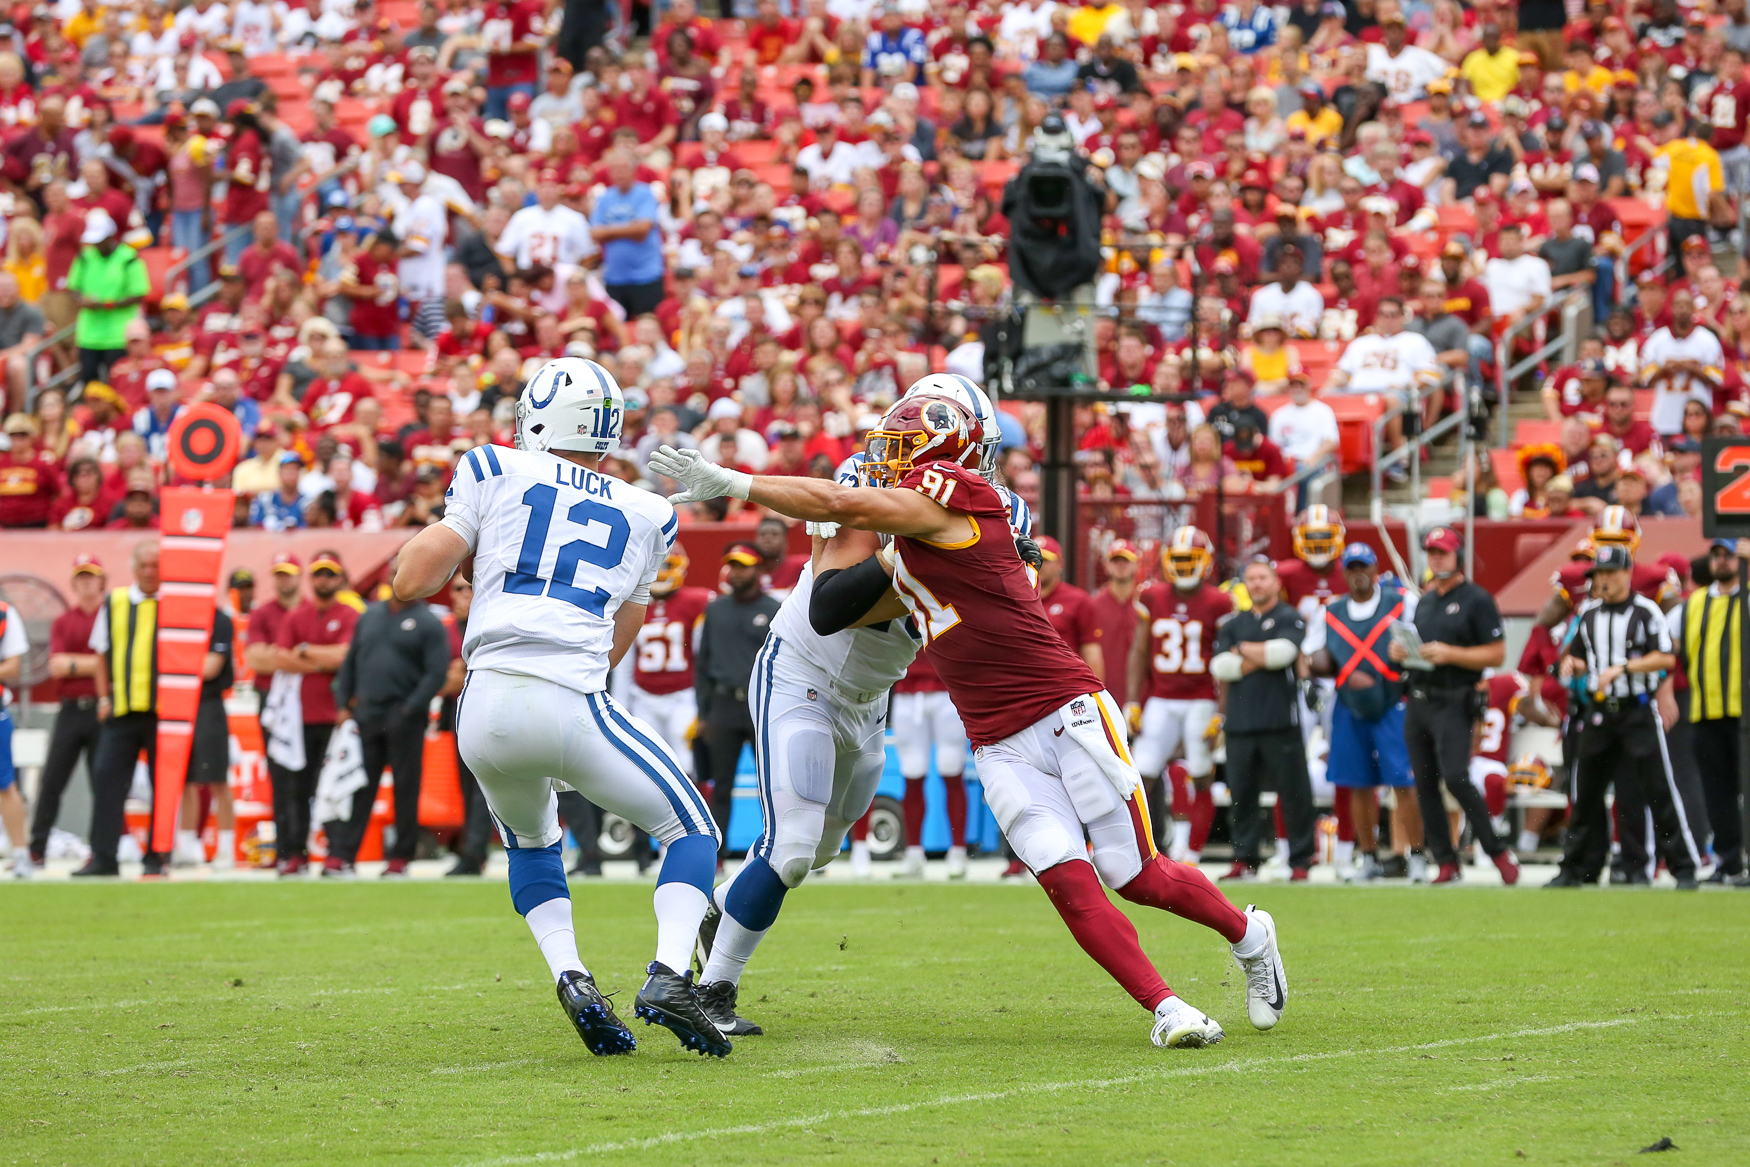 Football season is officially off to a rough start for fans of the Washington Redskins, who lost to the Indianapolis Colts during their home opener on September 16. The Redskins lost, 9 to 21. Although their offense was initially intense, they quickly crumbled and fans started abandoning the stadium by the start of the fourth quarter. The loss of the home opener may seem like a bad omen considering they also lost three out of their four pre-season games, but fans on both sides cheered during the halftime show, when local youth football teams hit the field. (Amanda Andrade-Rhoades/DC Refined)